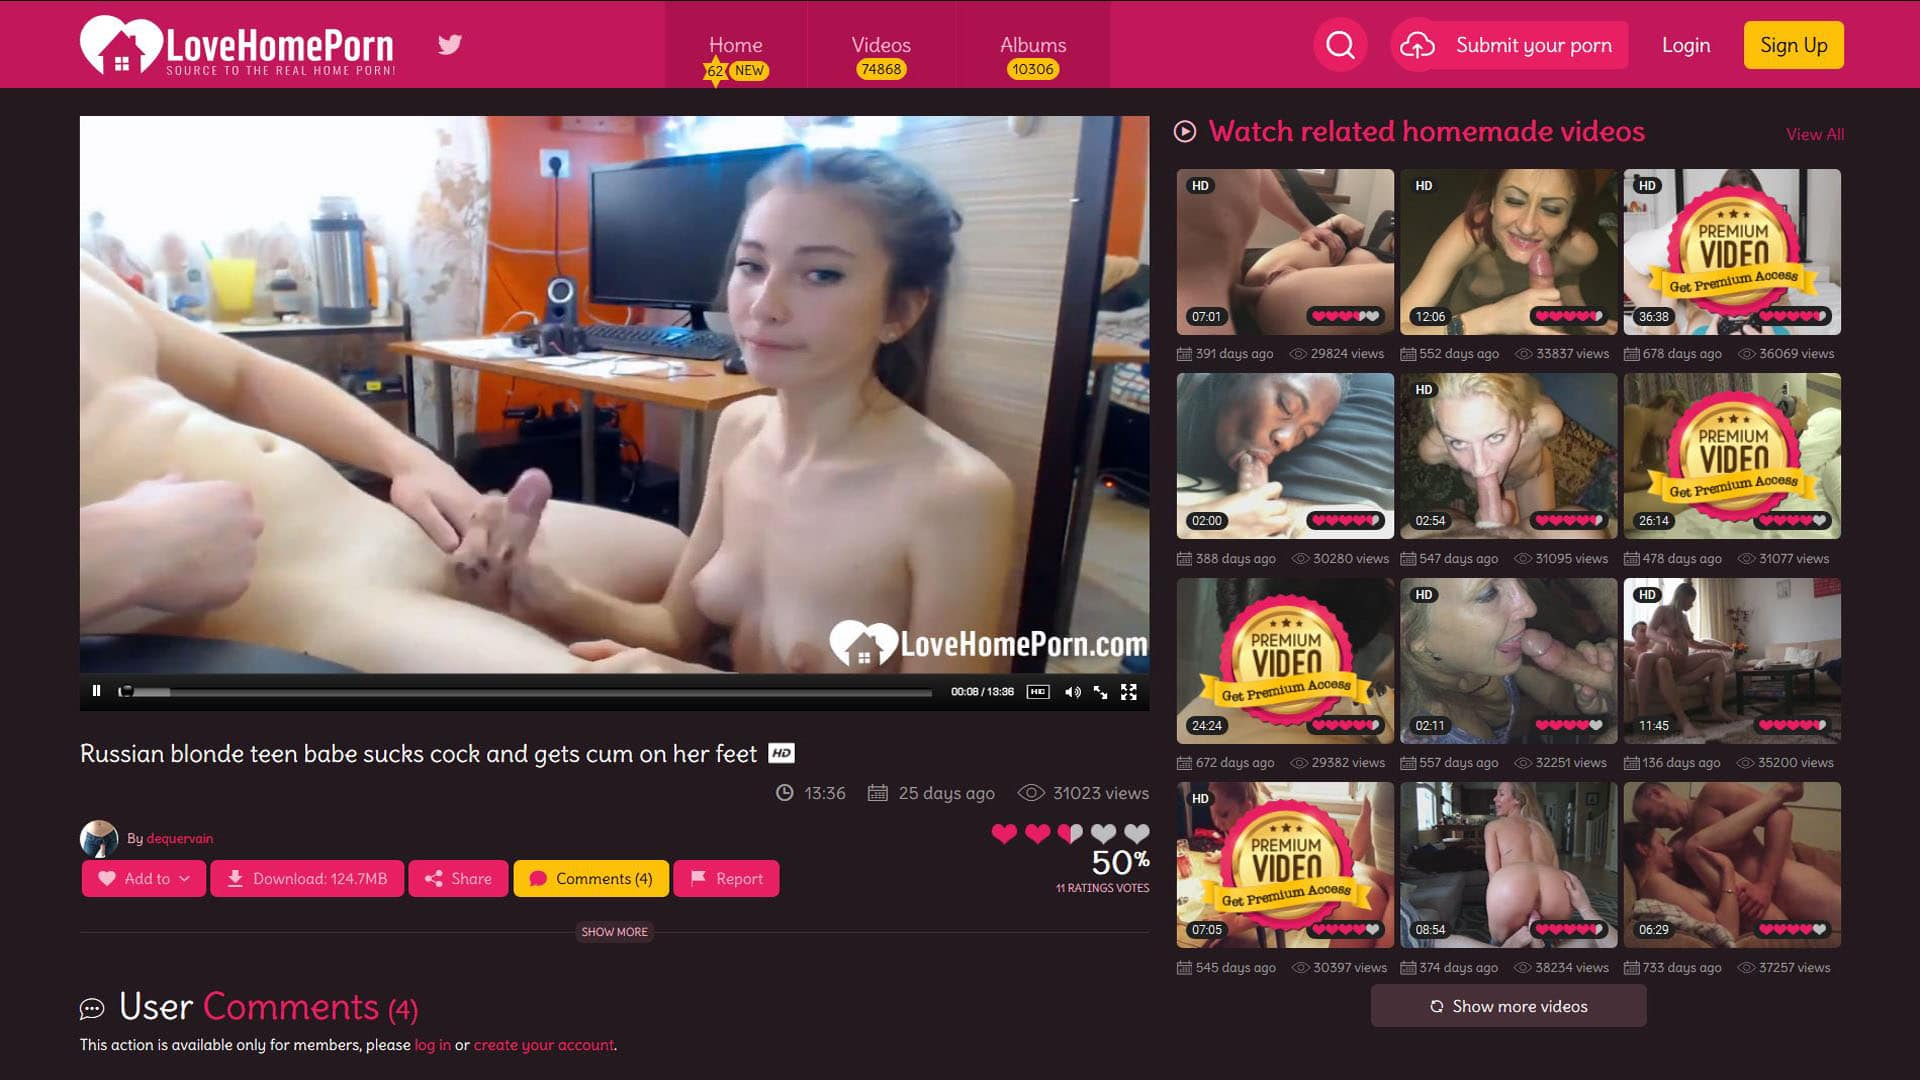 LoveHomePorn Russian Blonde Teen Babe Sucks Cock And Gets Cum On Her Feet